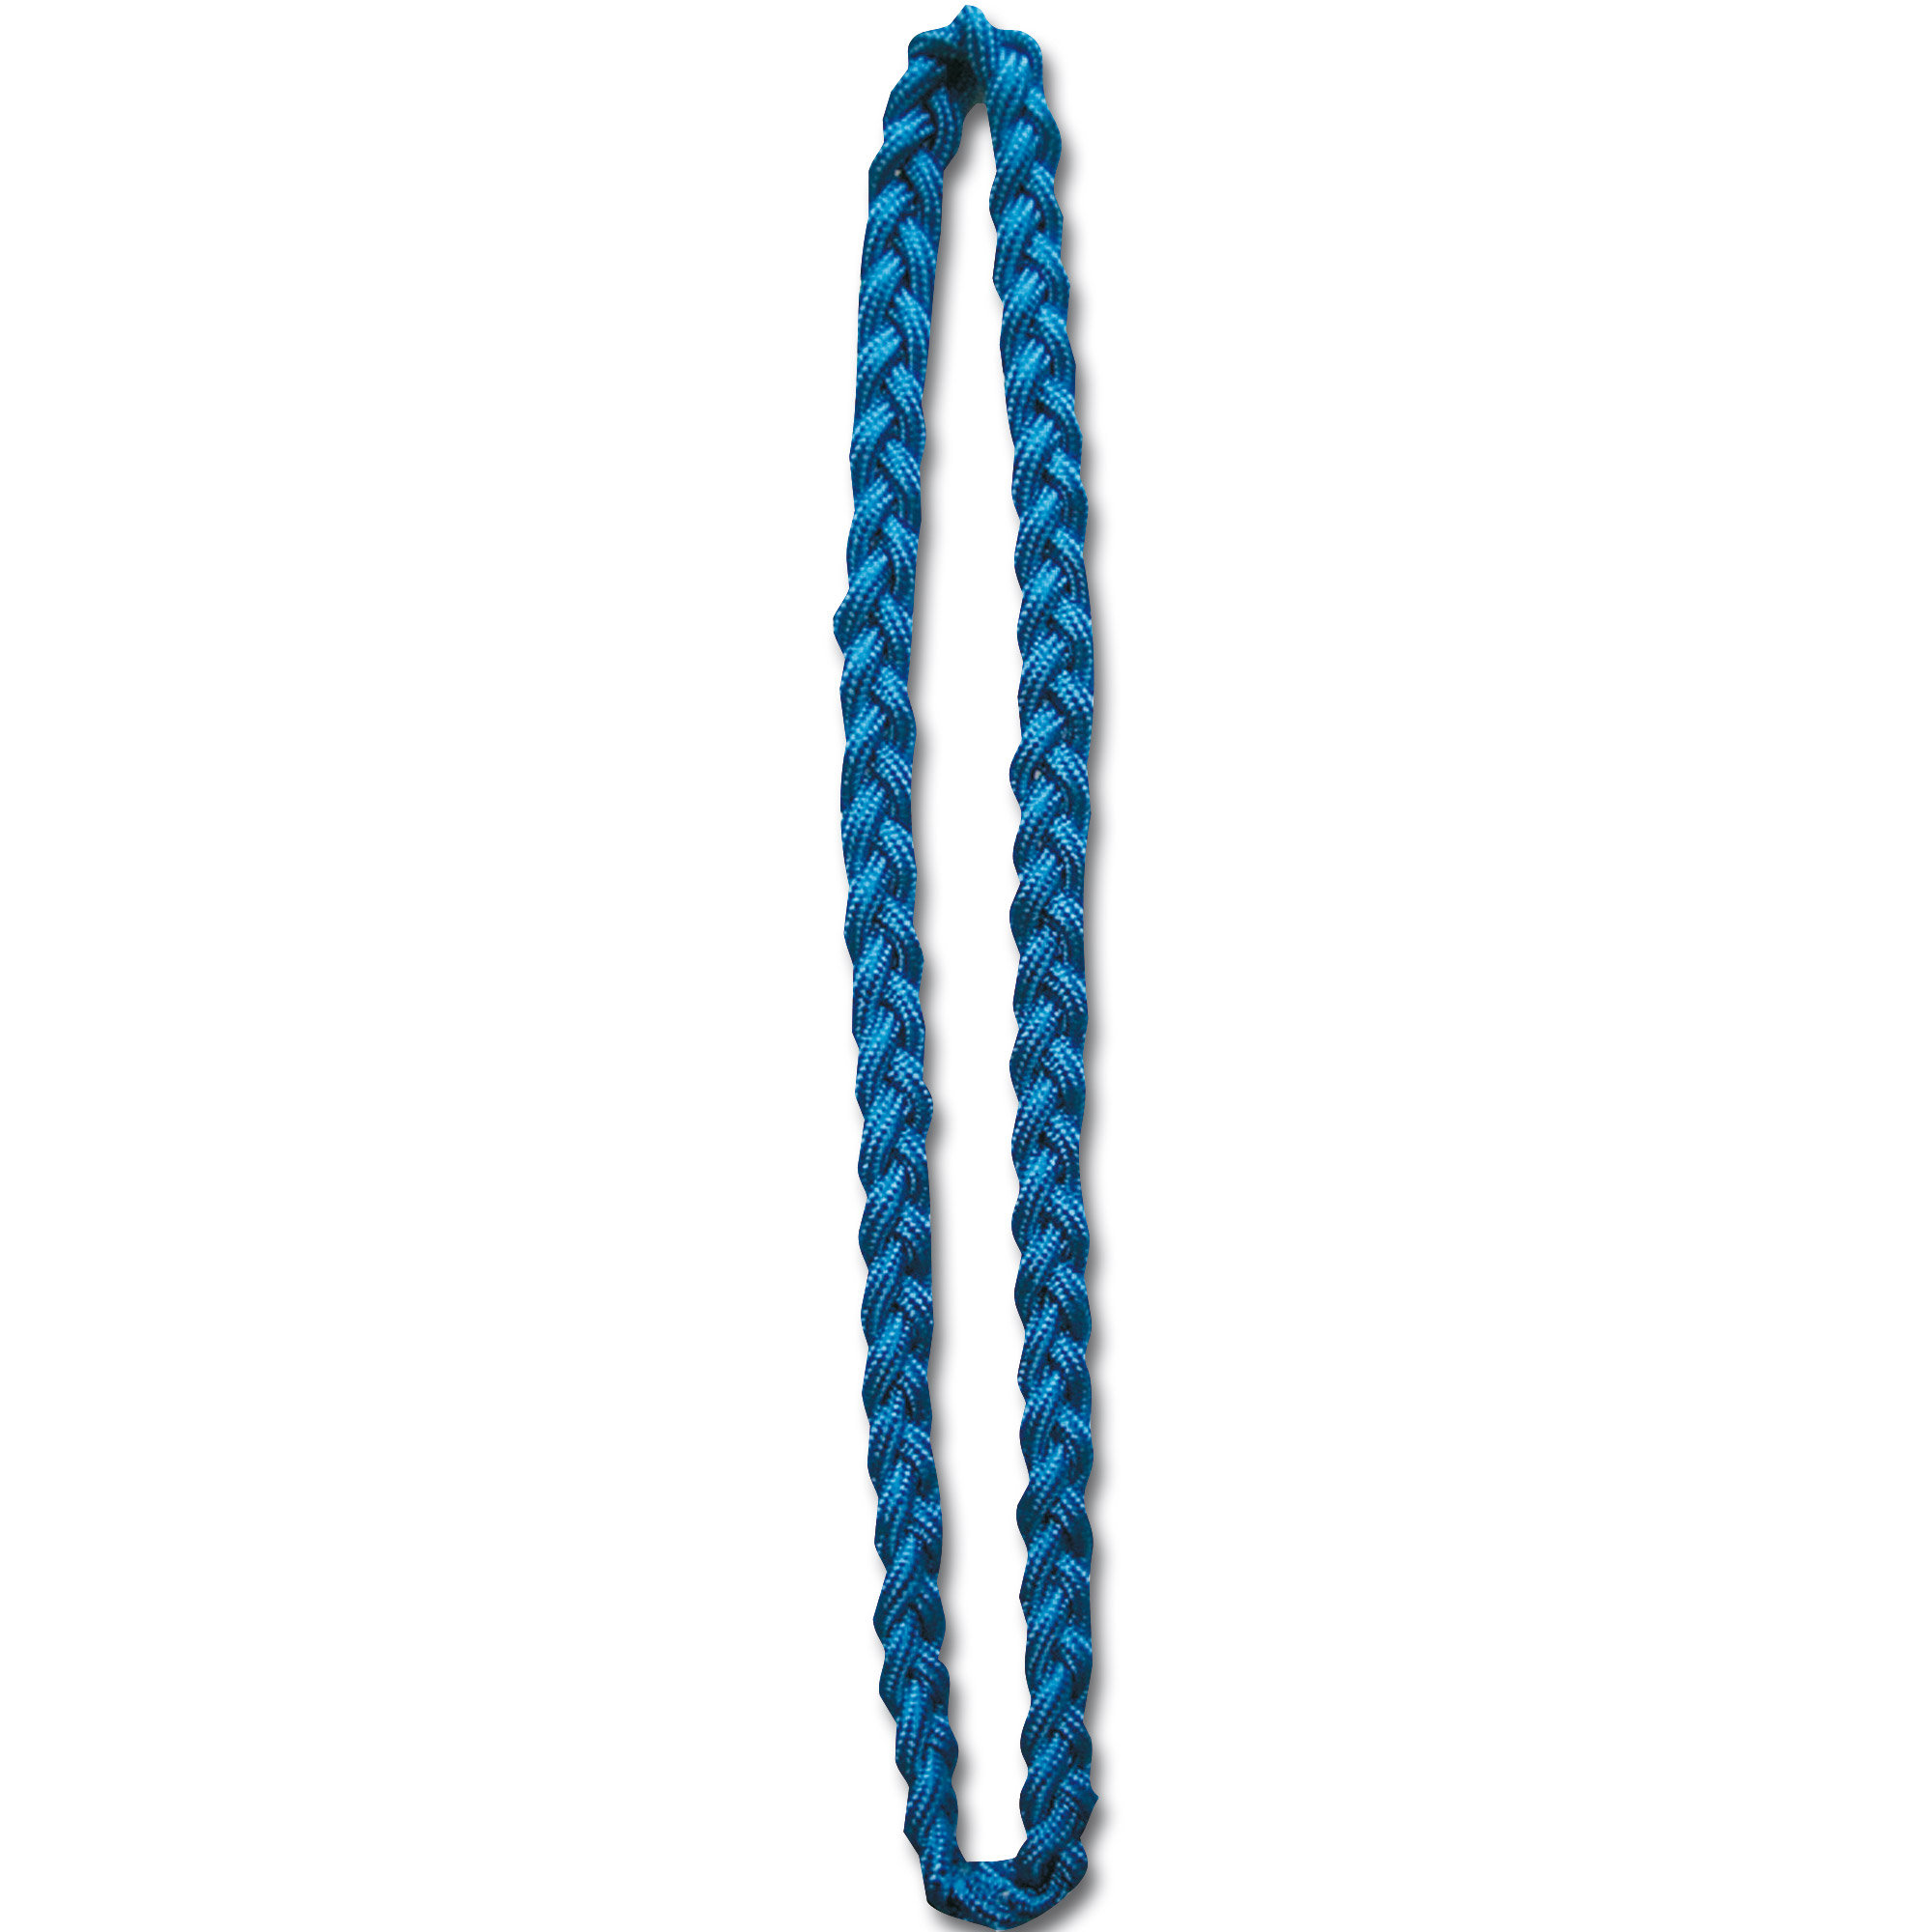 German Shoulder Cord blue (non-commissioned officer on duty)